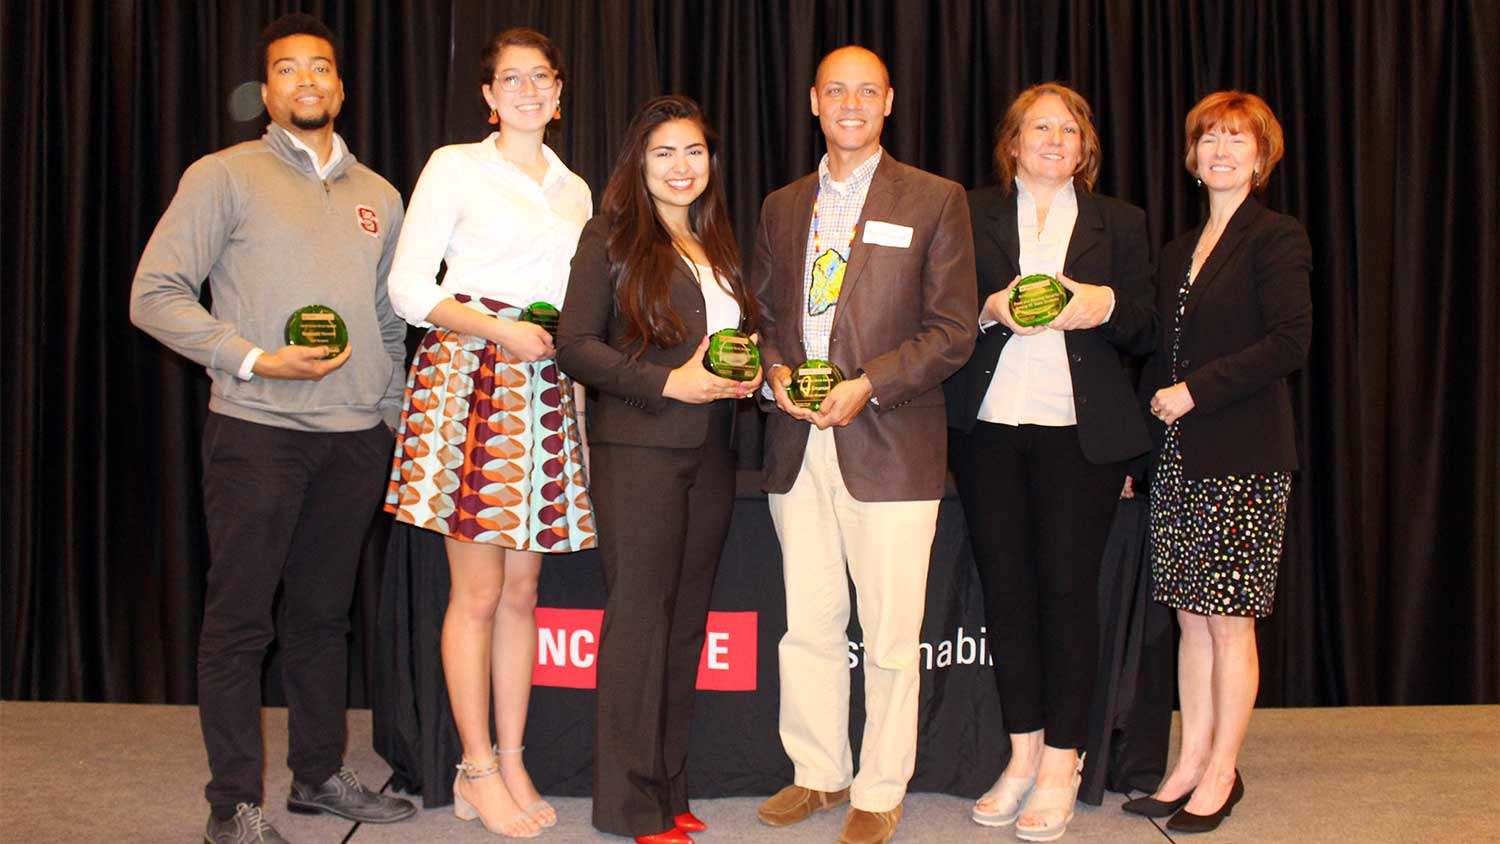 Green Brick Award winners (left to right) Reggie Howell, Mary Paz Alvarez Valverde, Engineers Without Borders president Michelle Lishner, Dr. Ryan Emanuel, and Food and Housing Security initiative representatives Sarah Wright and Dr. Mary Haskett.